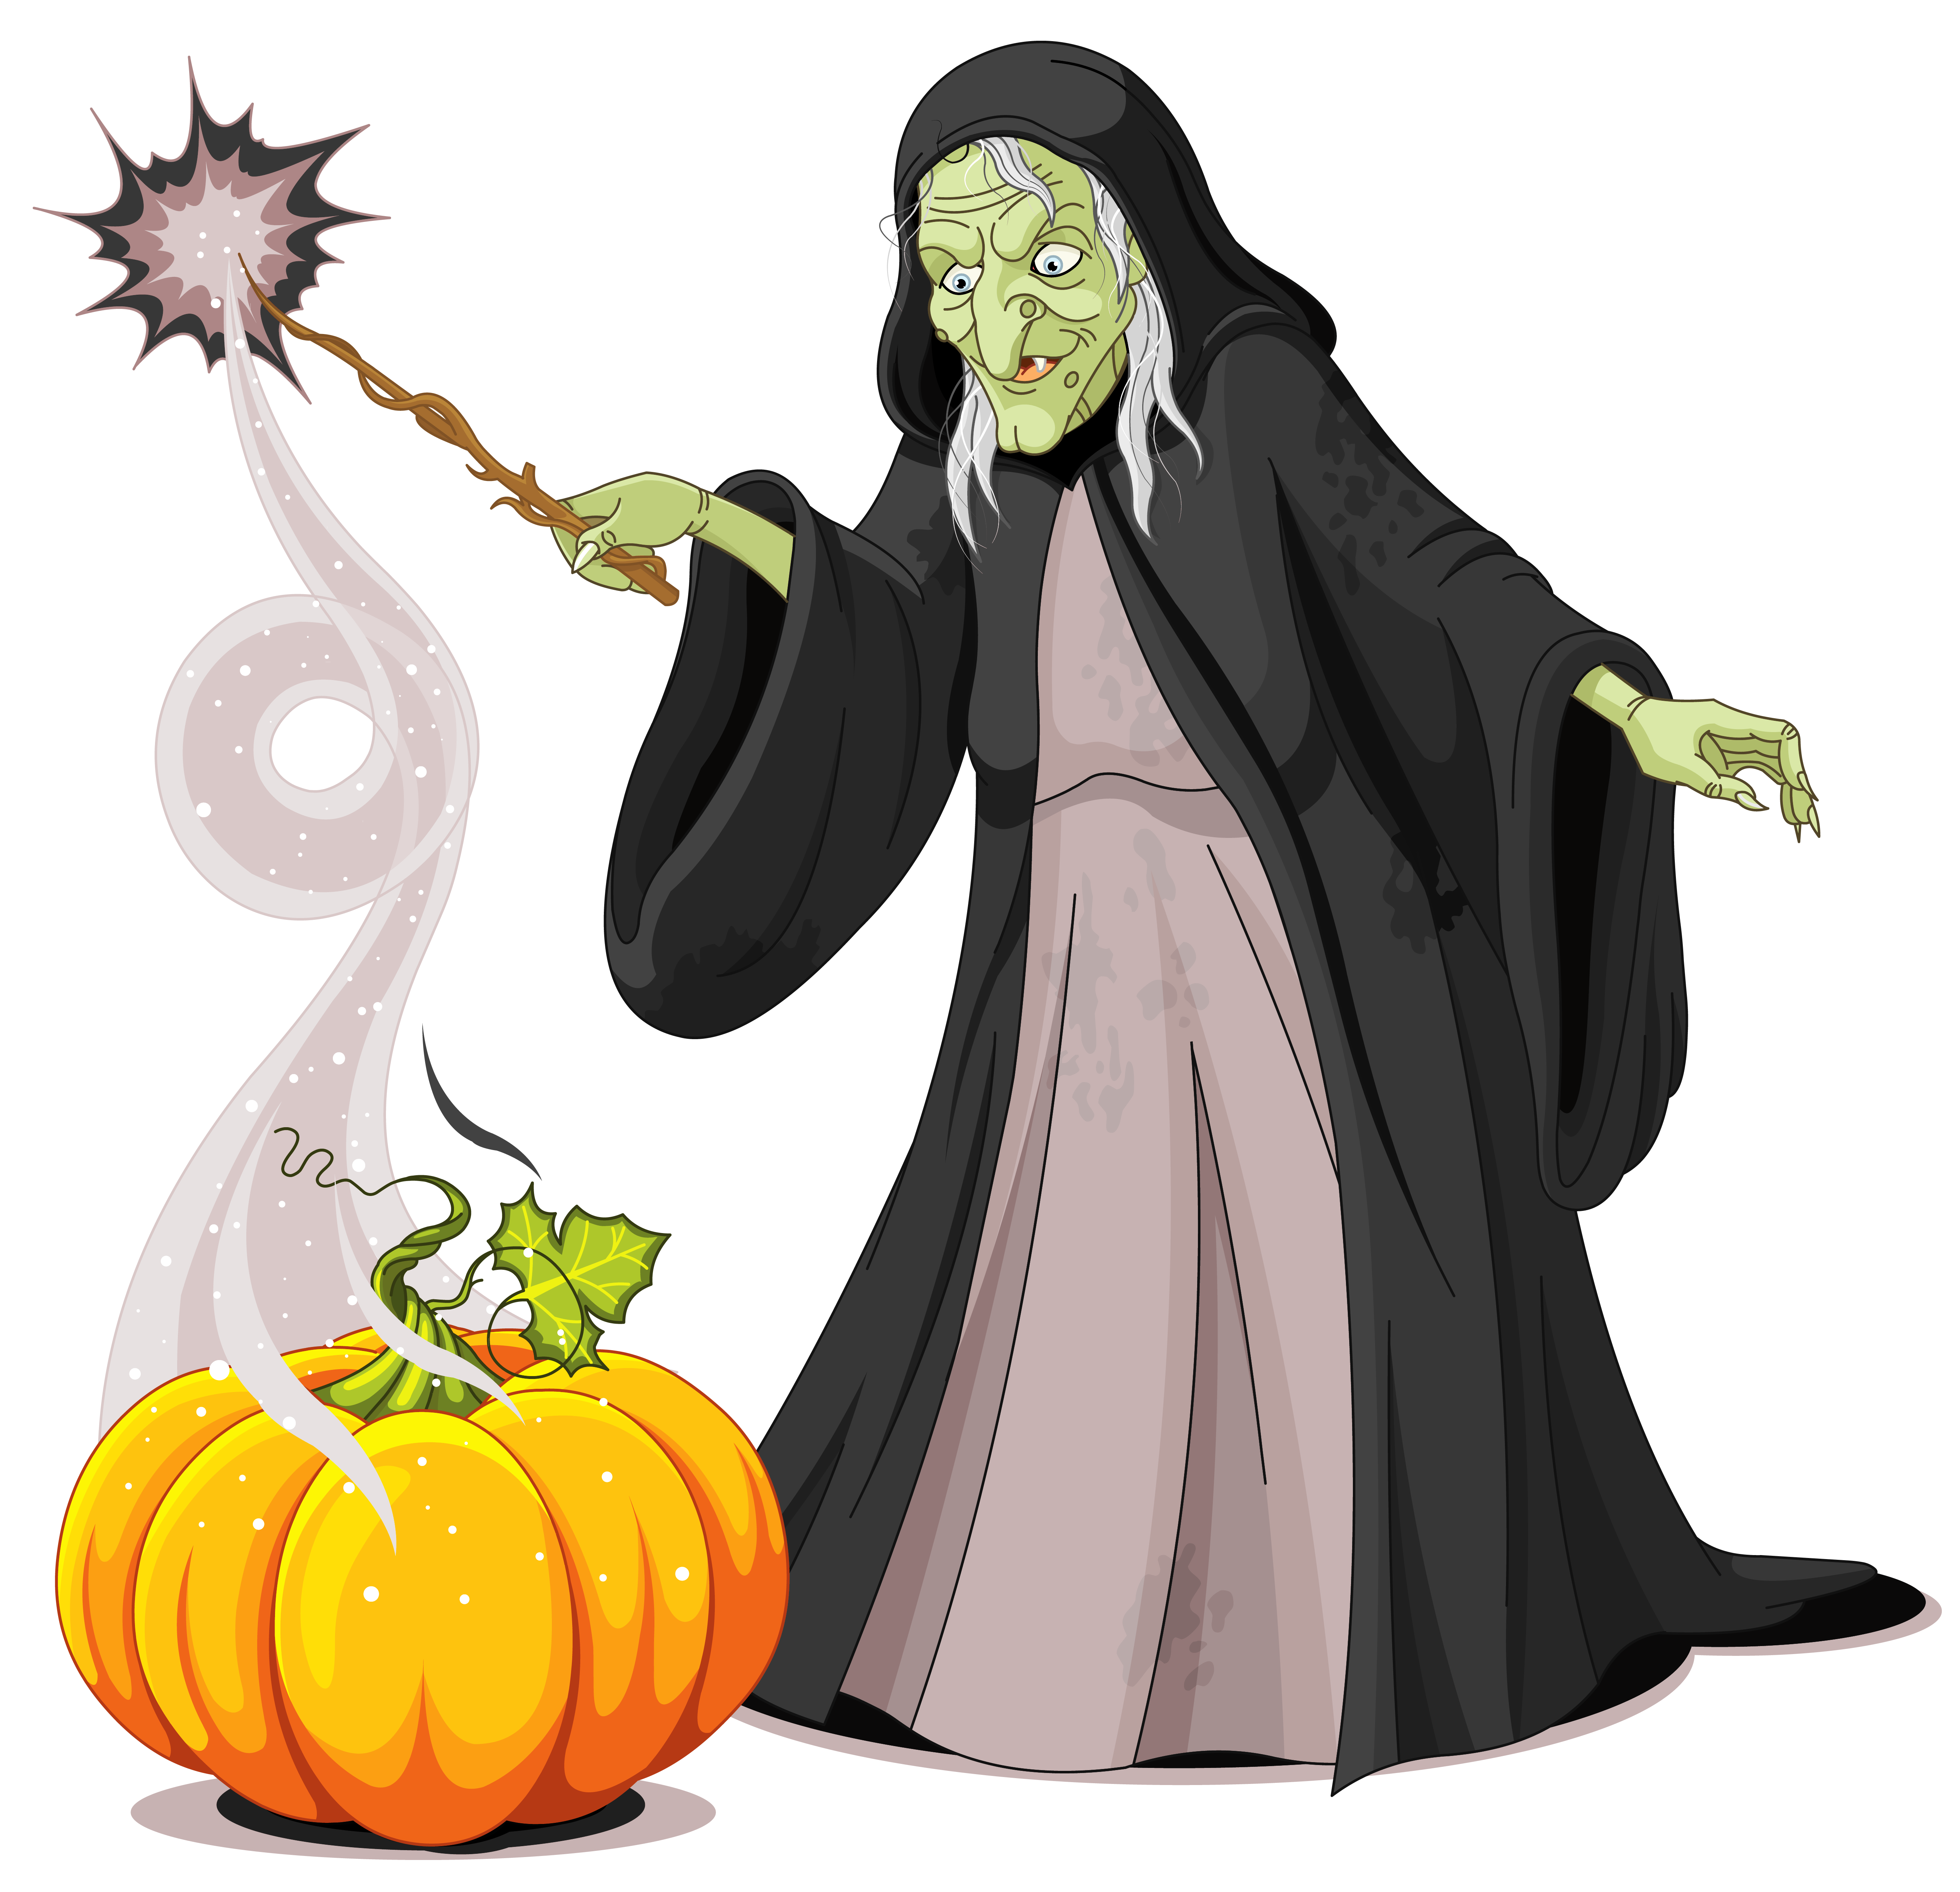 Halloween creepy png picture. Witch clipart witch spell